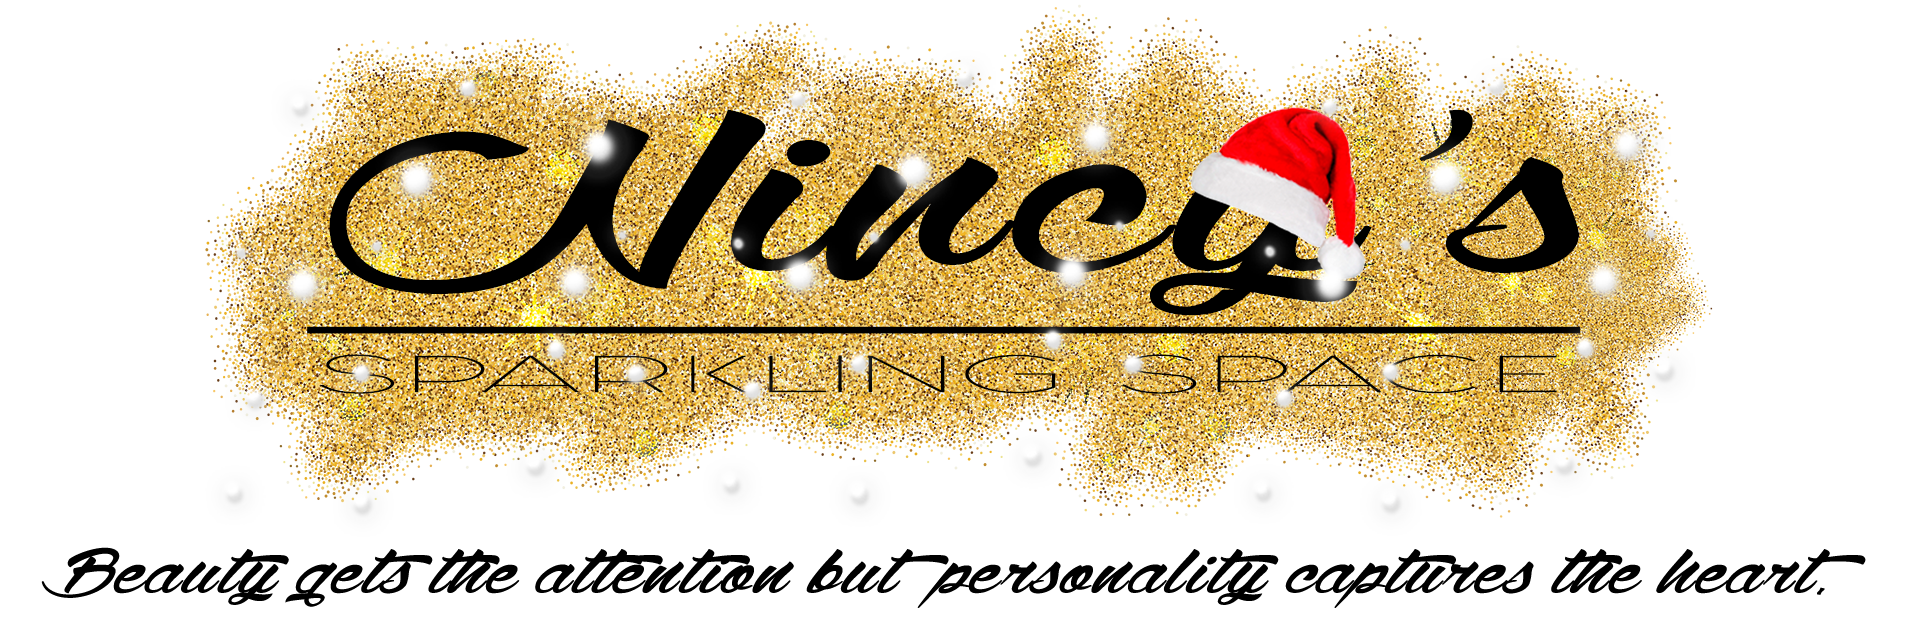 Nincy's Sparkling Space - Blogs & Vlogs